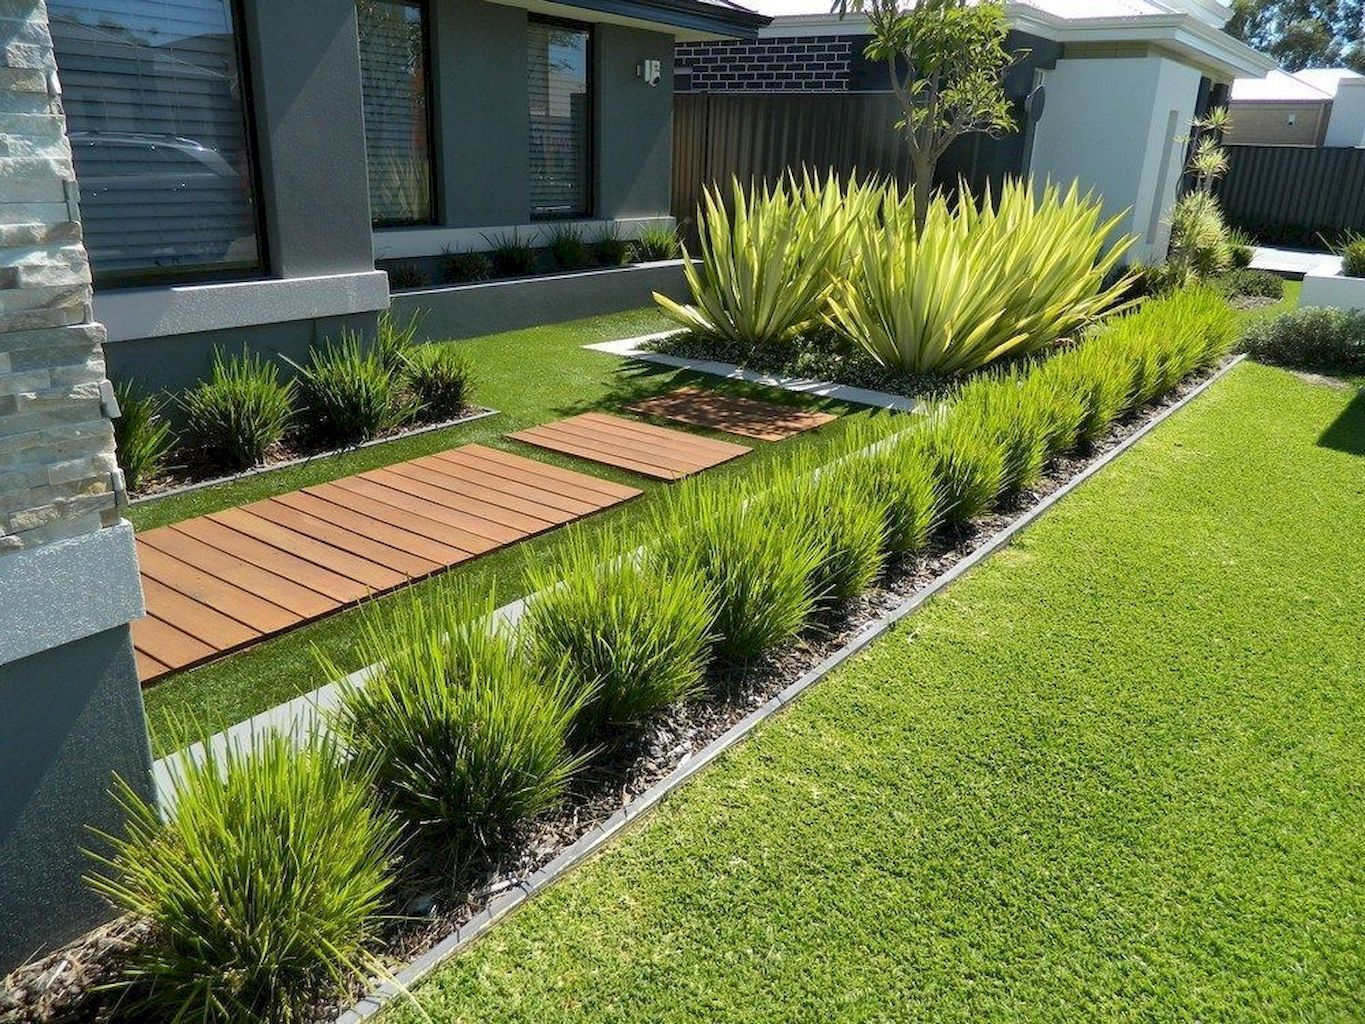 Best Front Yard Landscaping Ideas And Garden Designs 55 Front